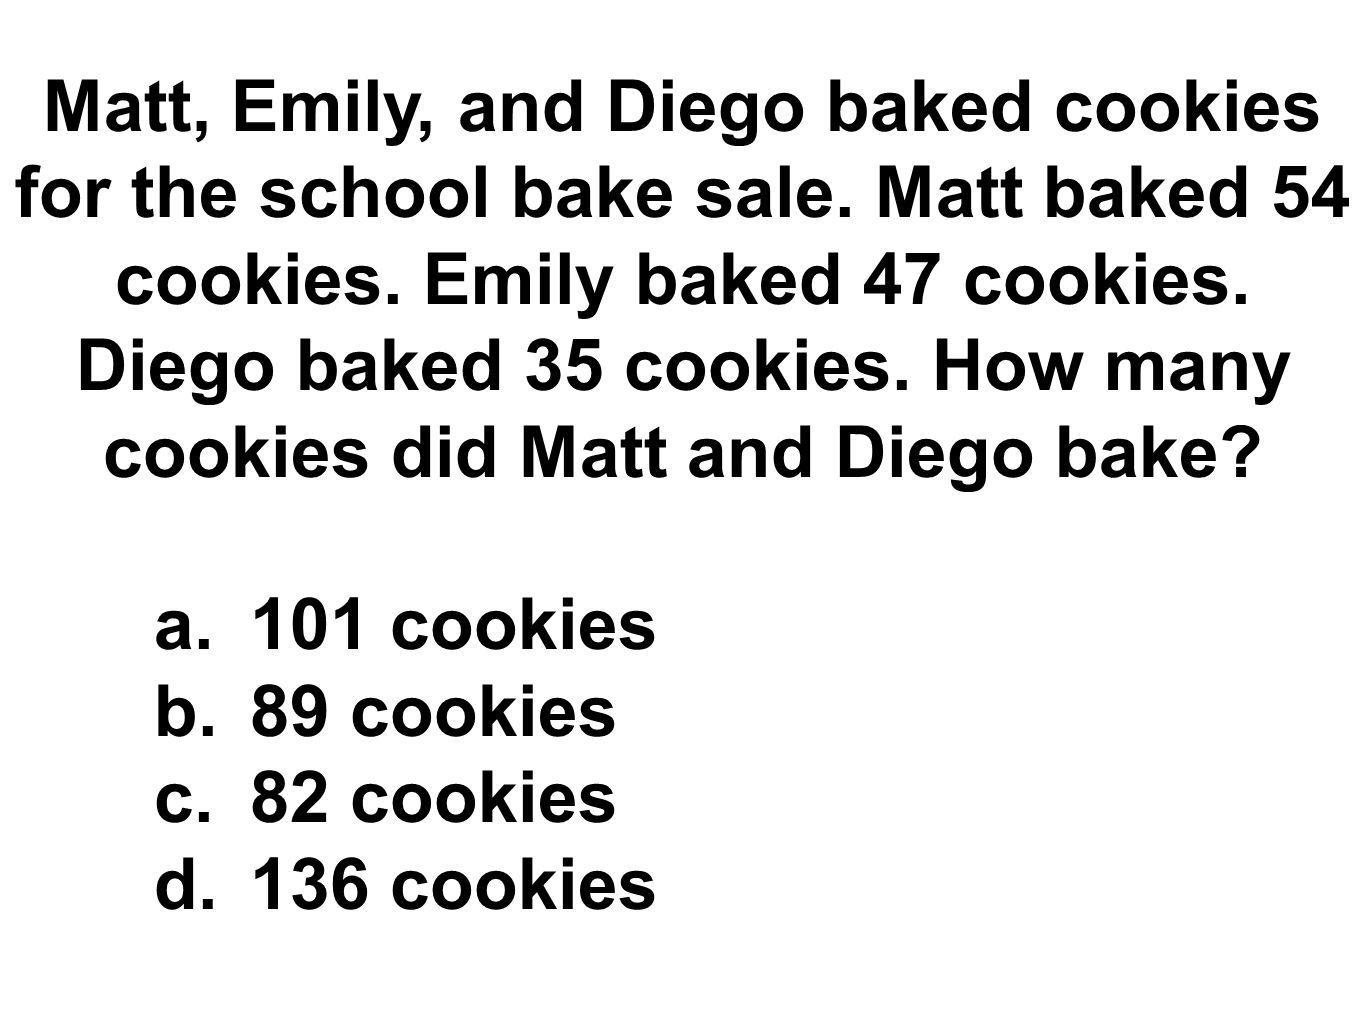 Matt, Emily, and Diego baked cookies for the school bake sale